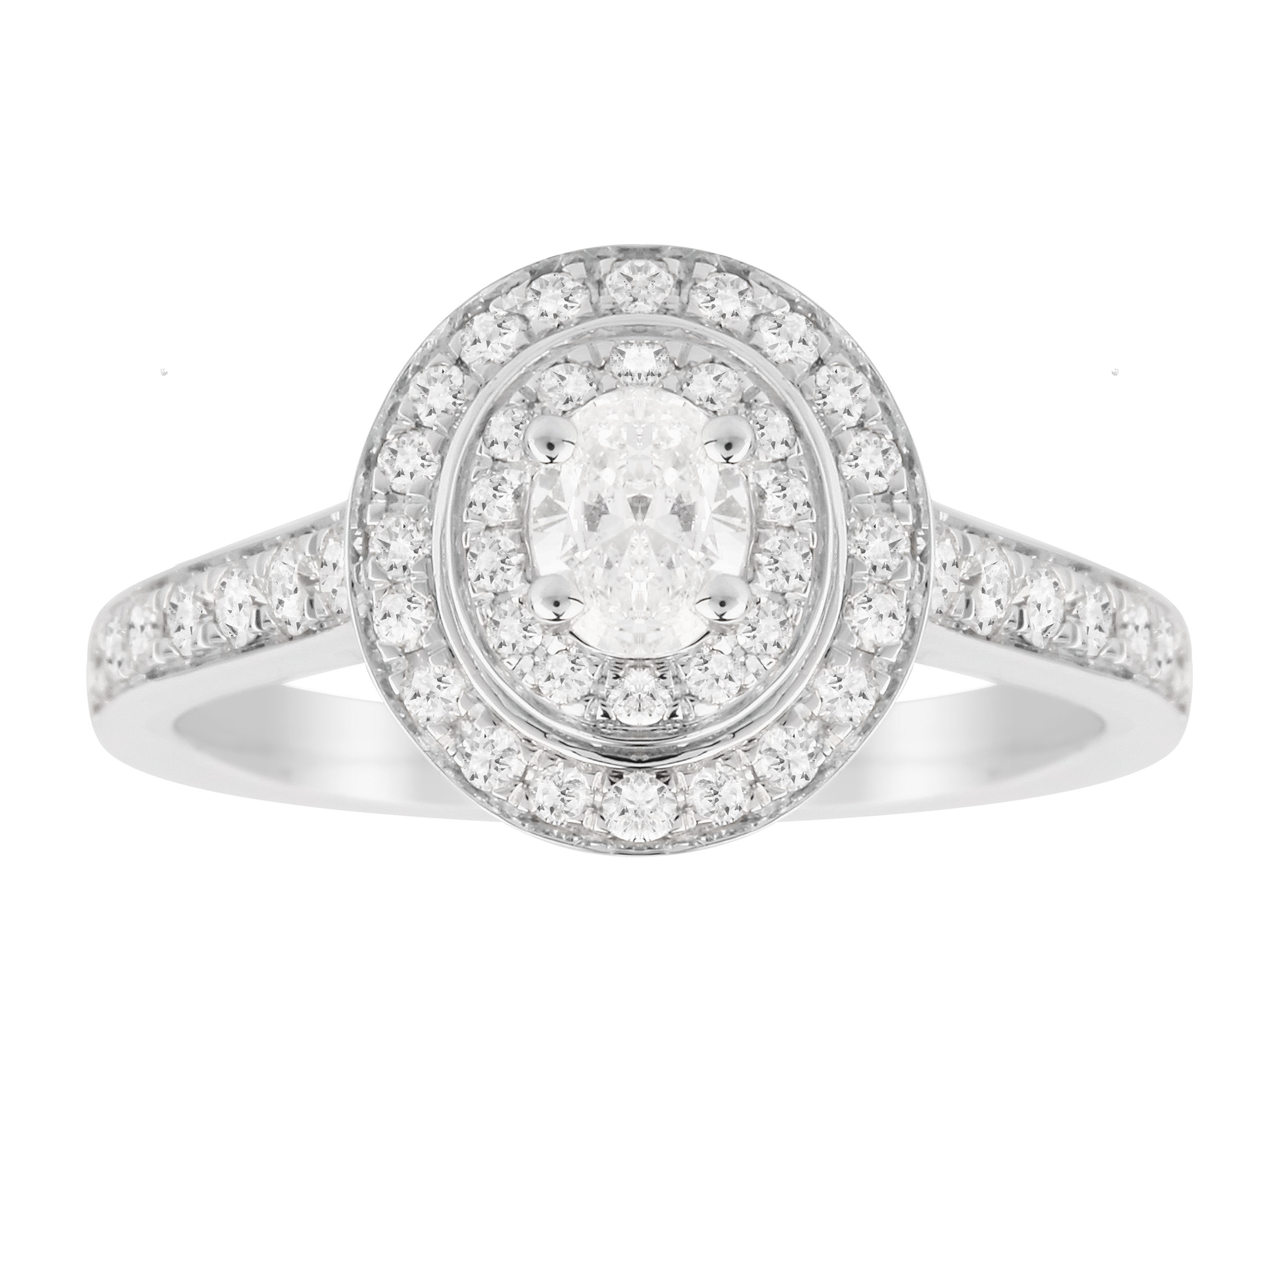 p jenny diamond total ring cut wedding carat rings gold white in packham double halo cushion context weight